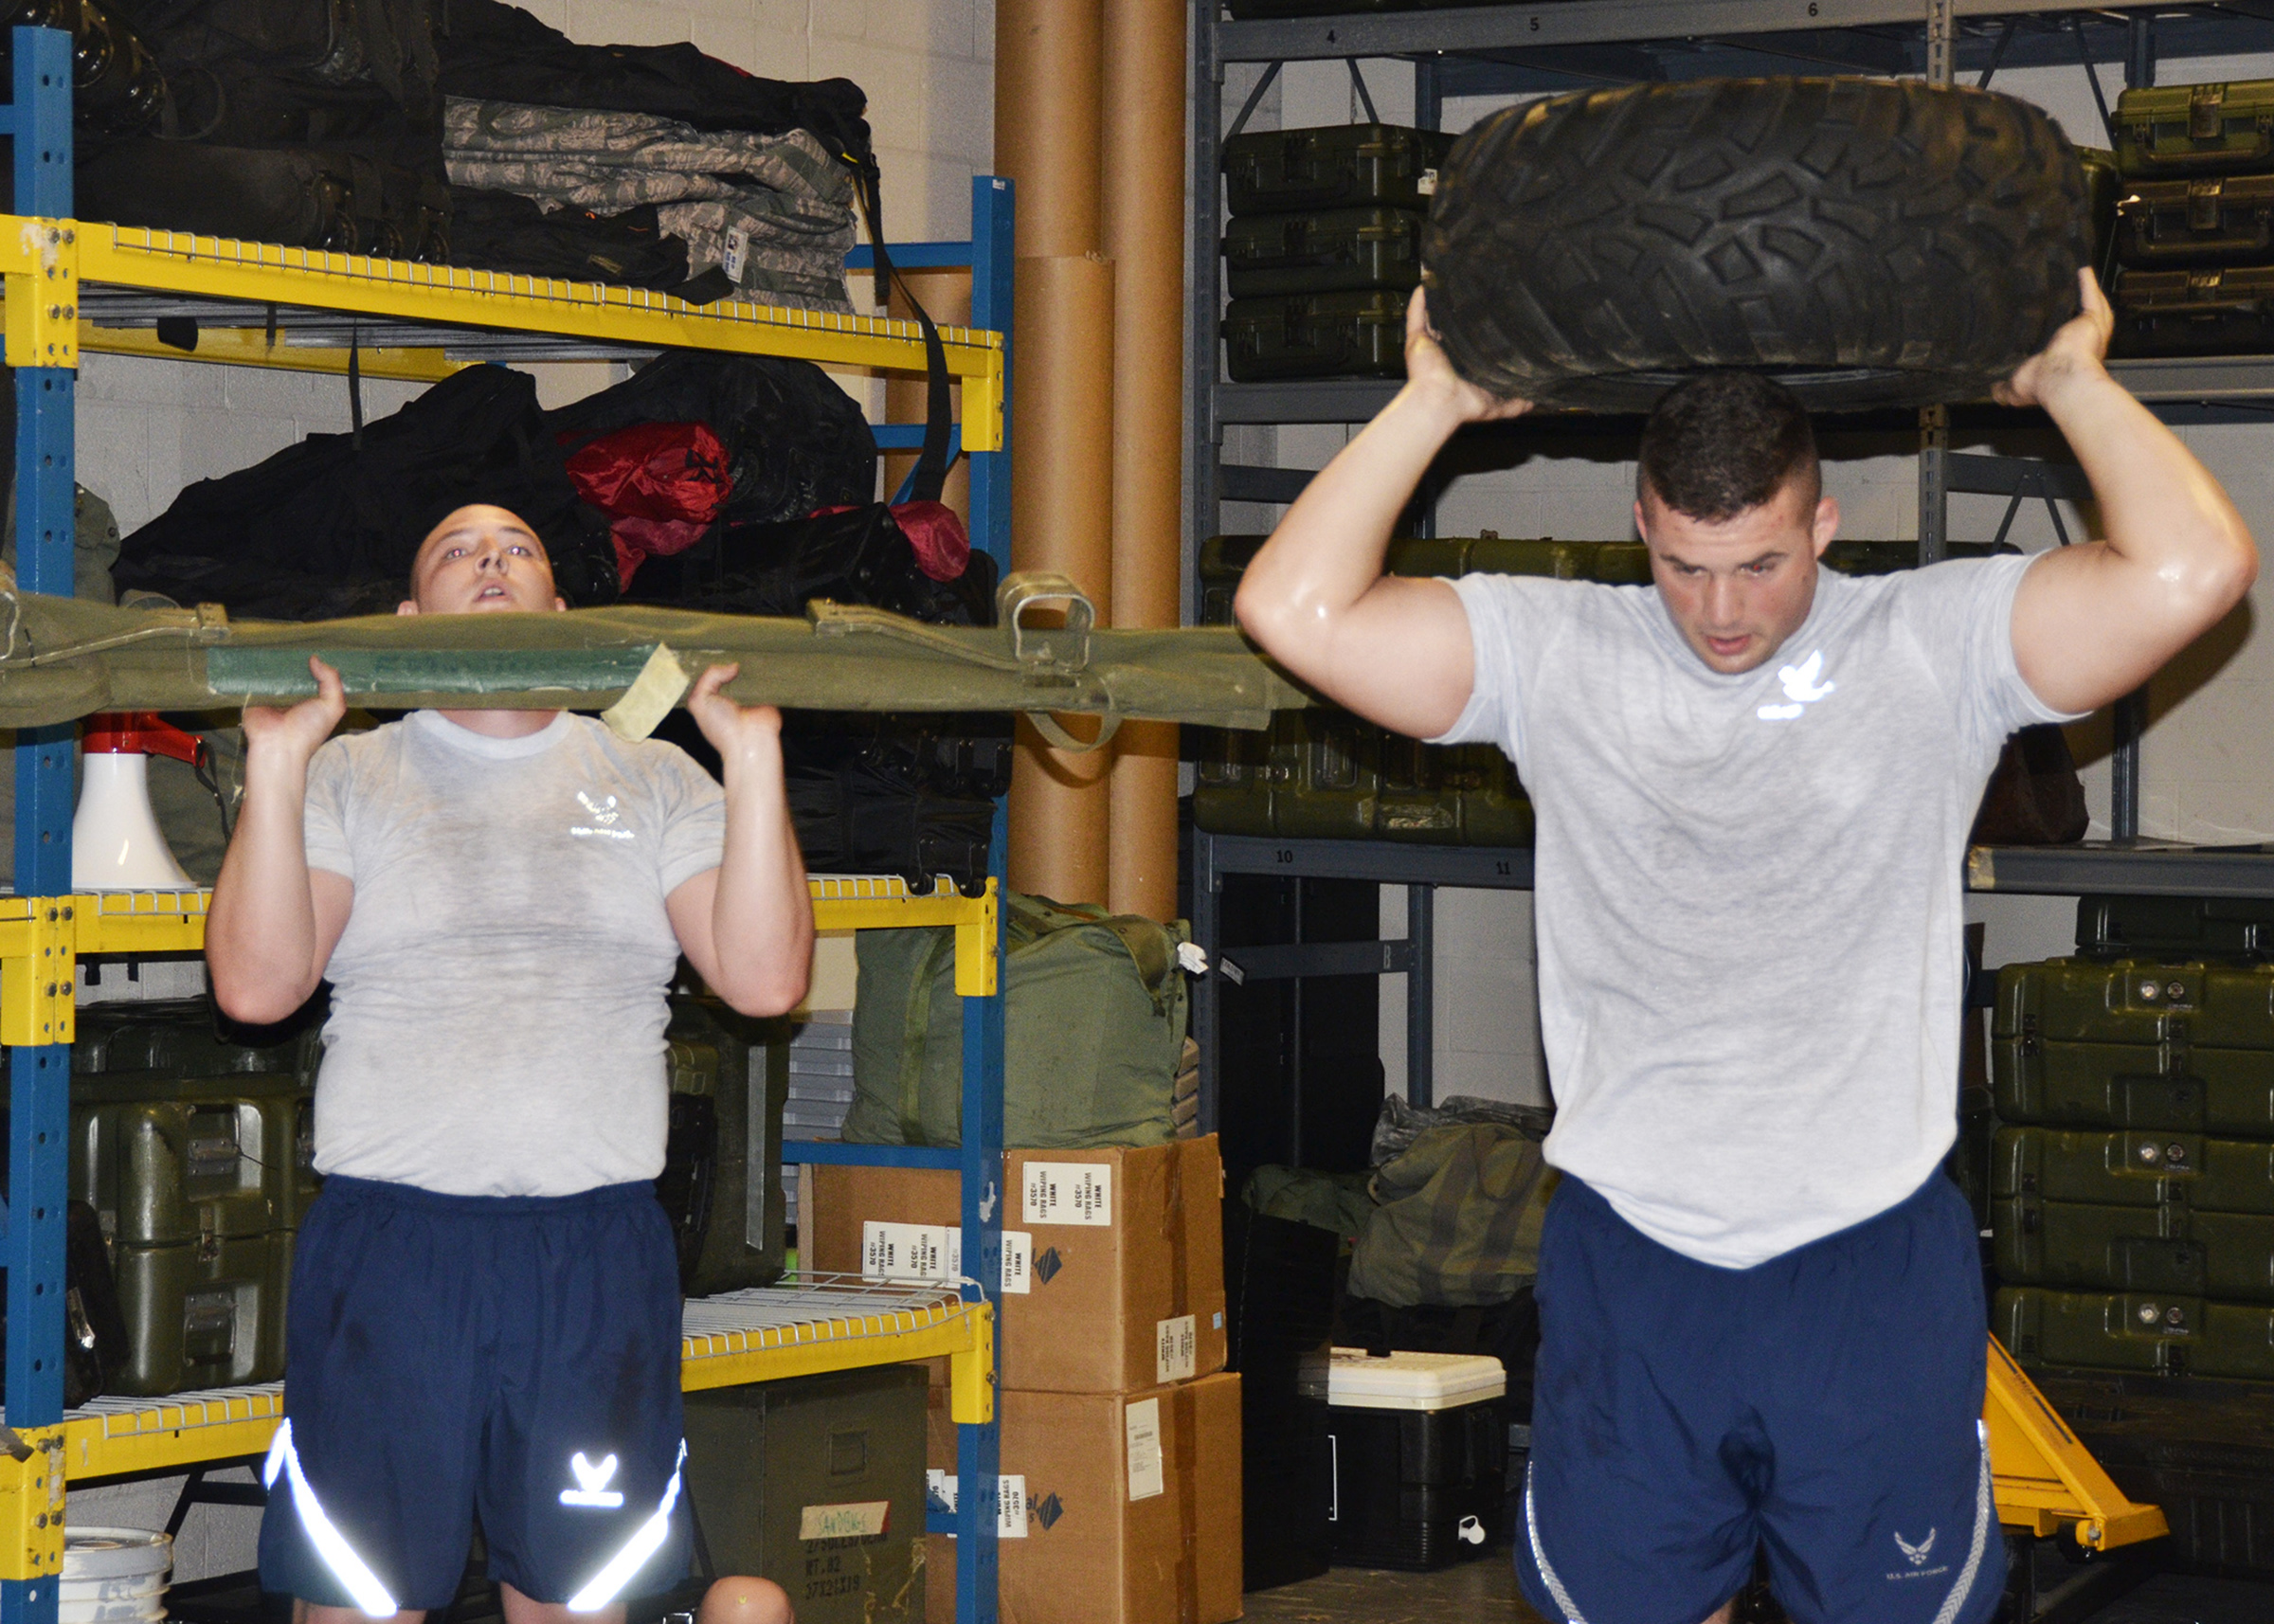 445th SFS tackles physical fitness > 445th Airlift Wing